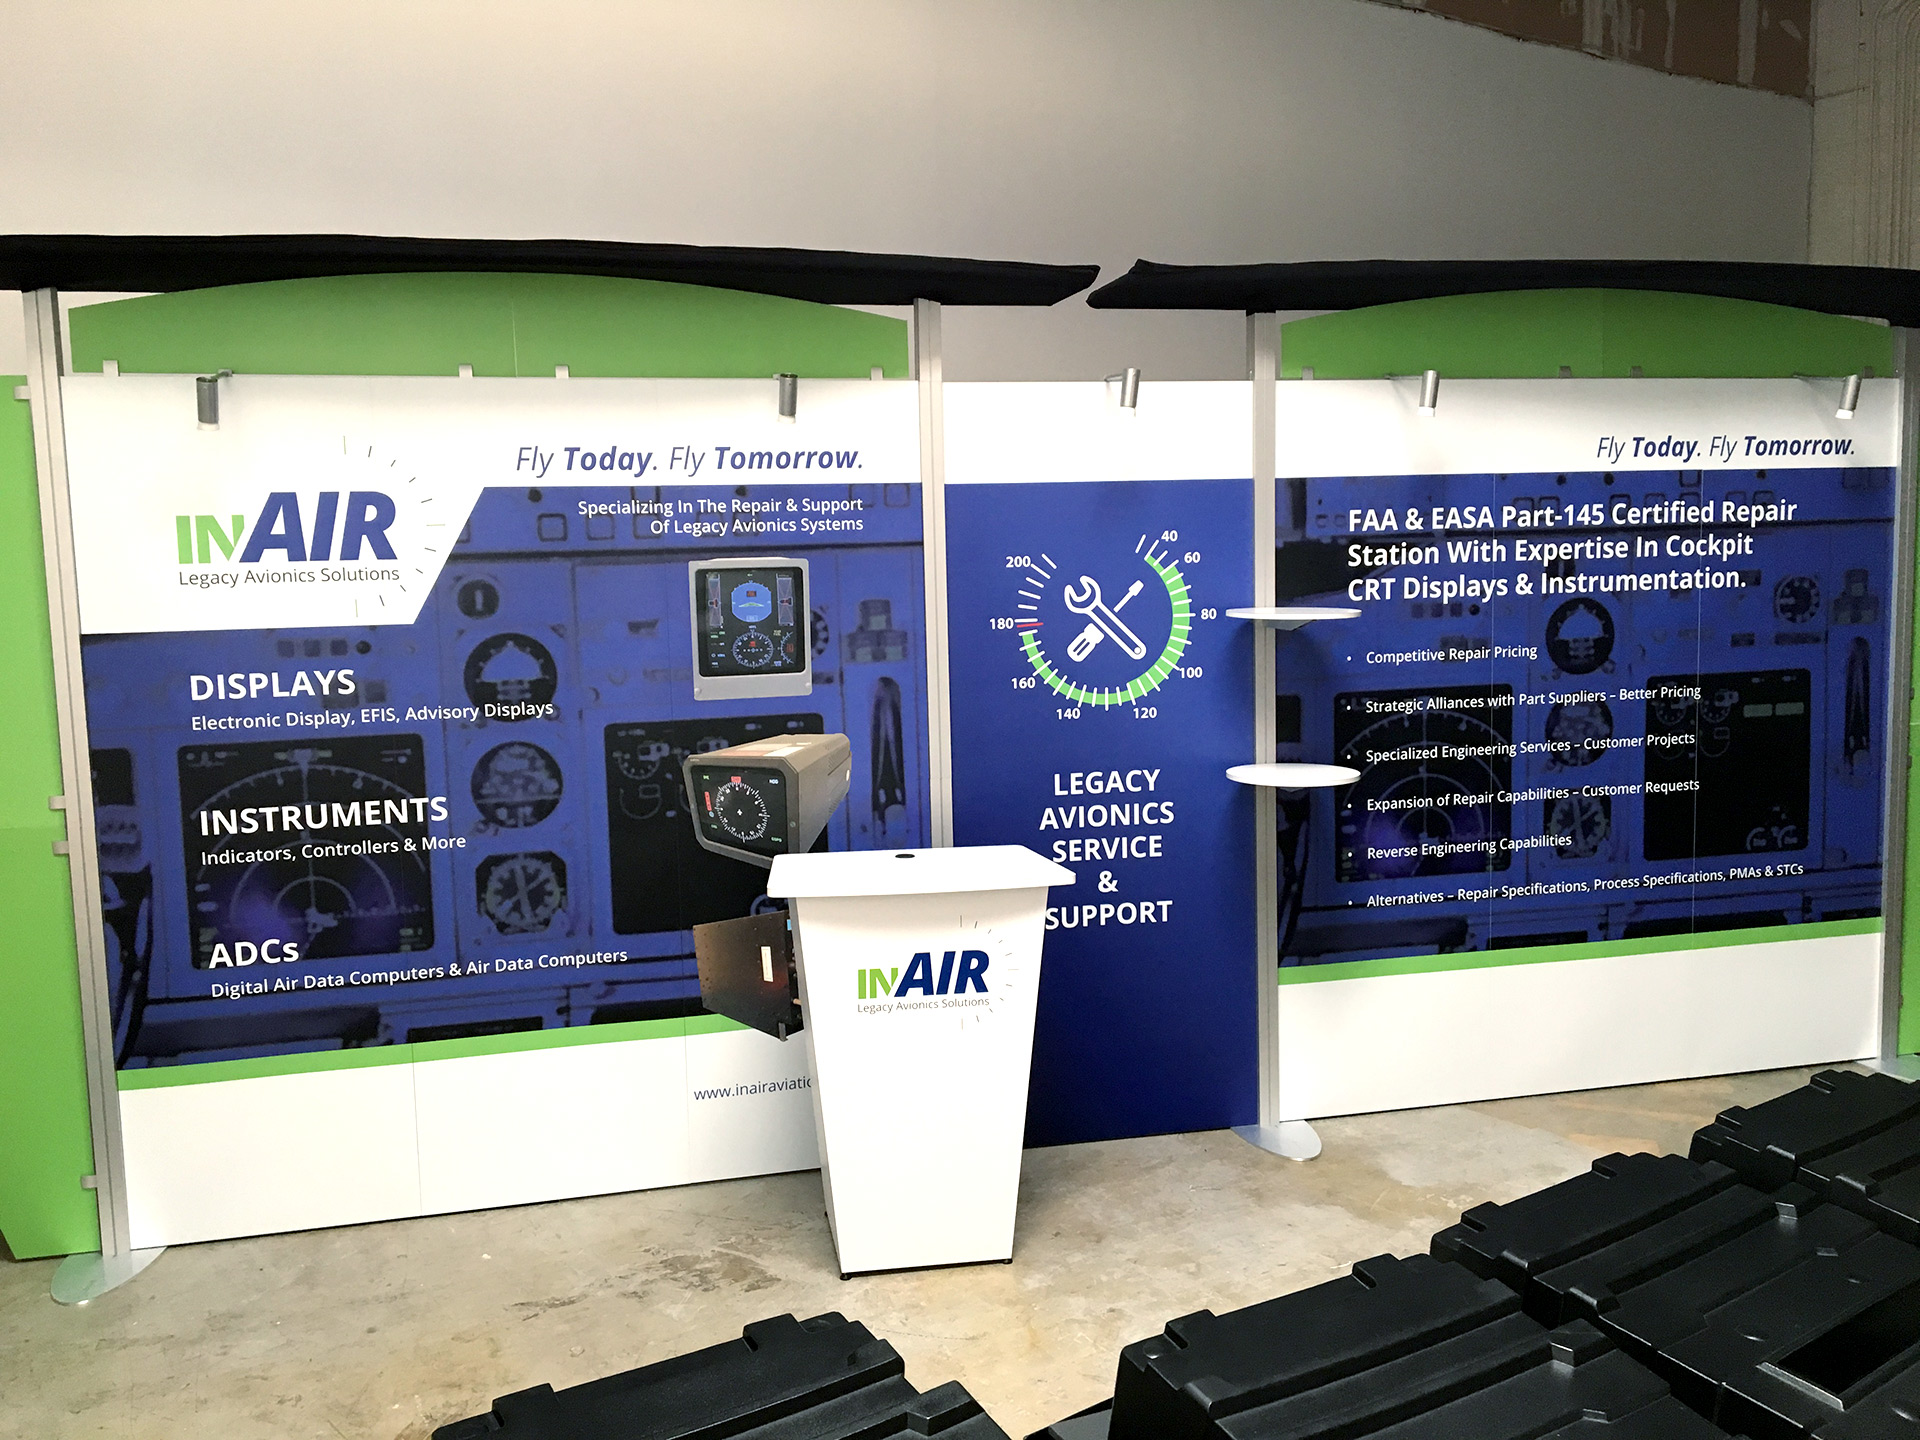 INair Tradeshow Booth